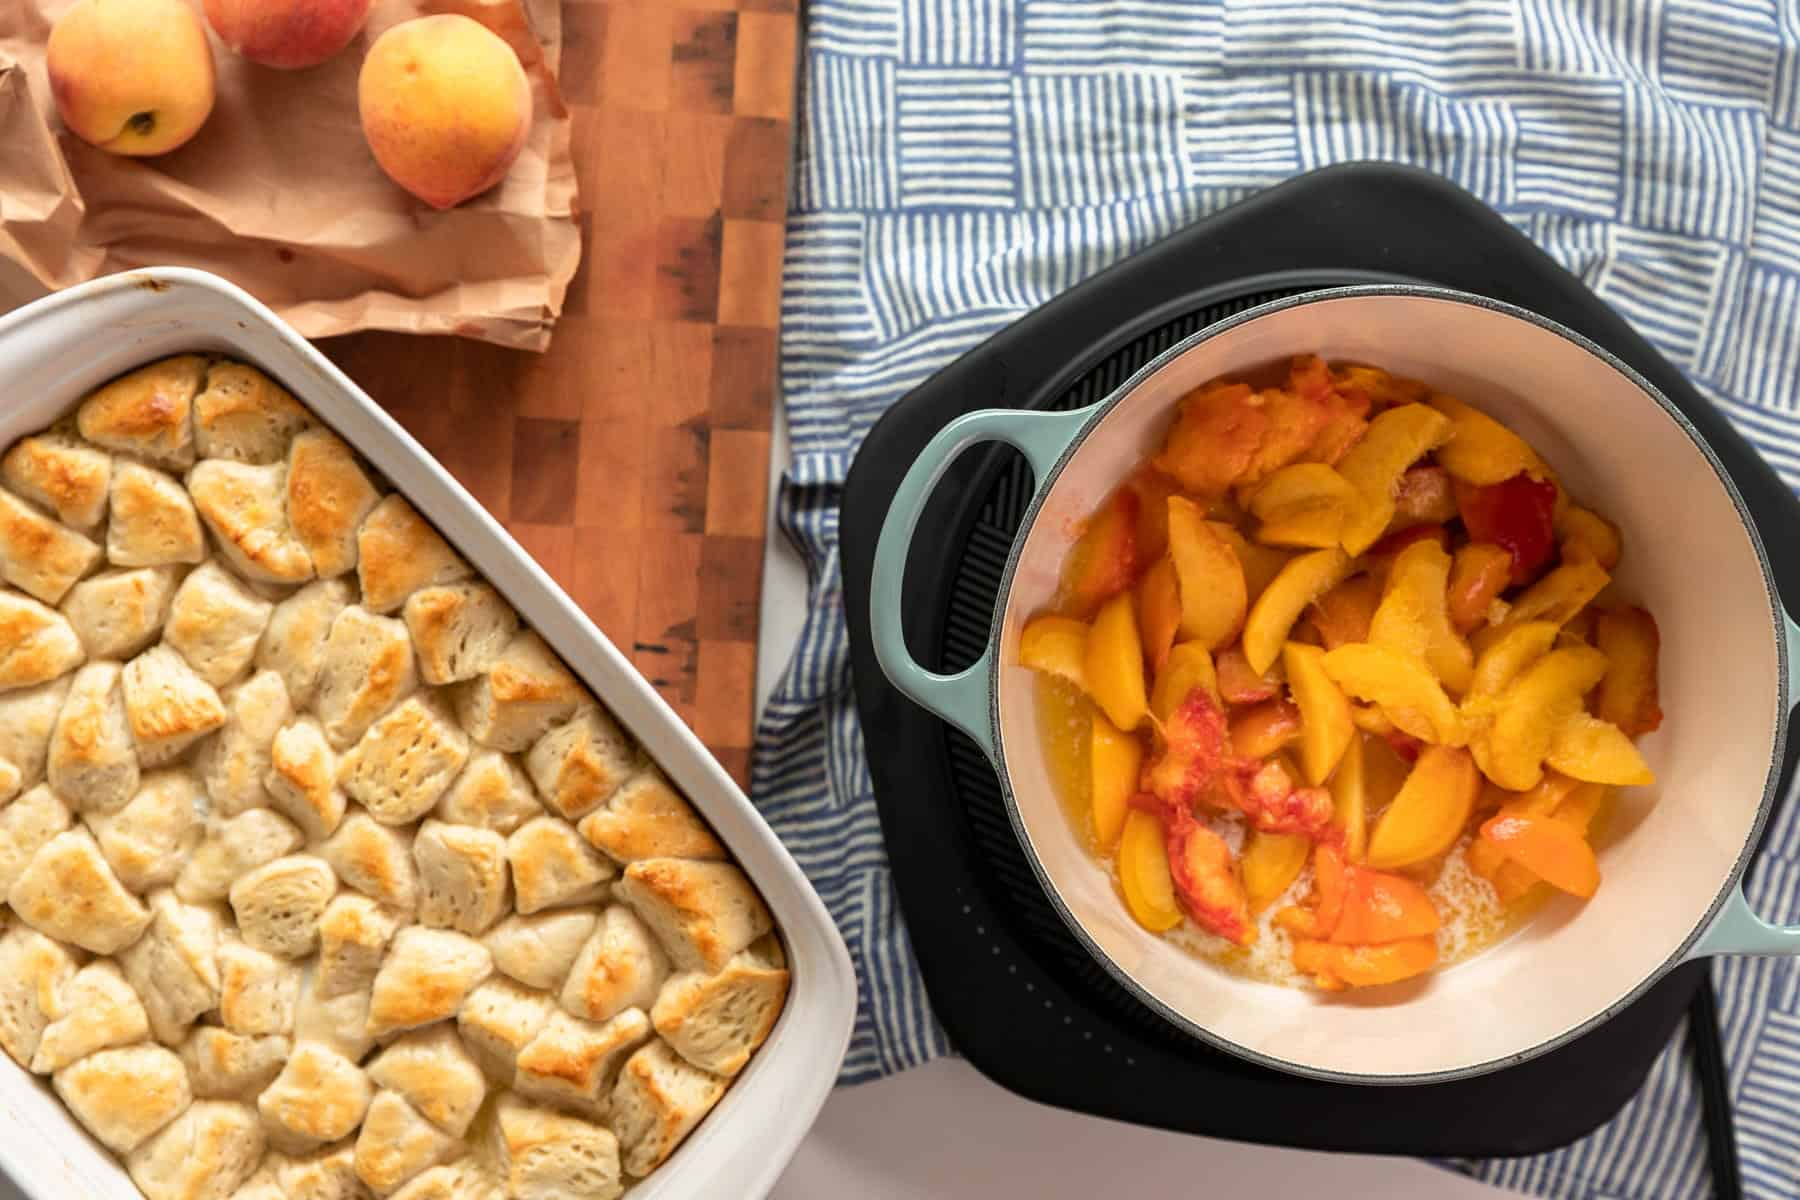 sliced peaches in a sea salt le creuset dutch oven with par baked buttermilk biscuits in casserole dish next to it